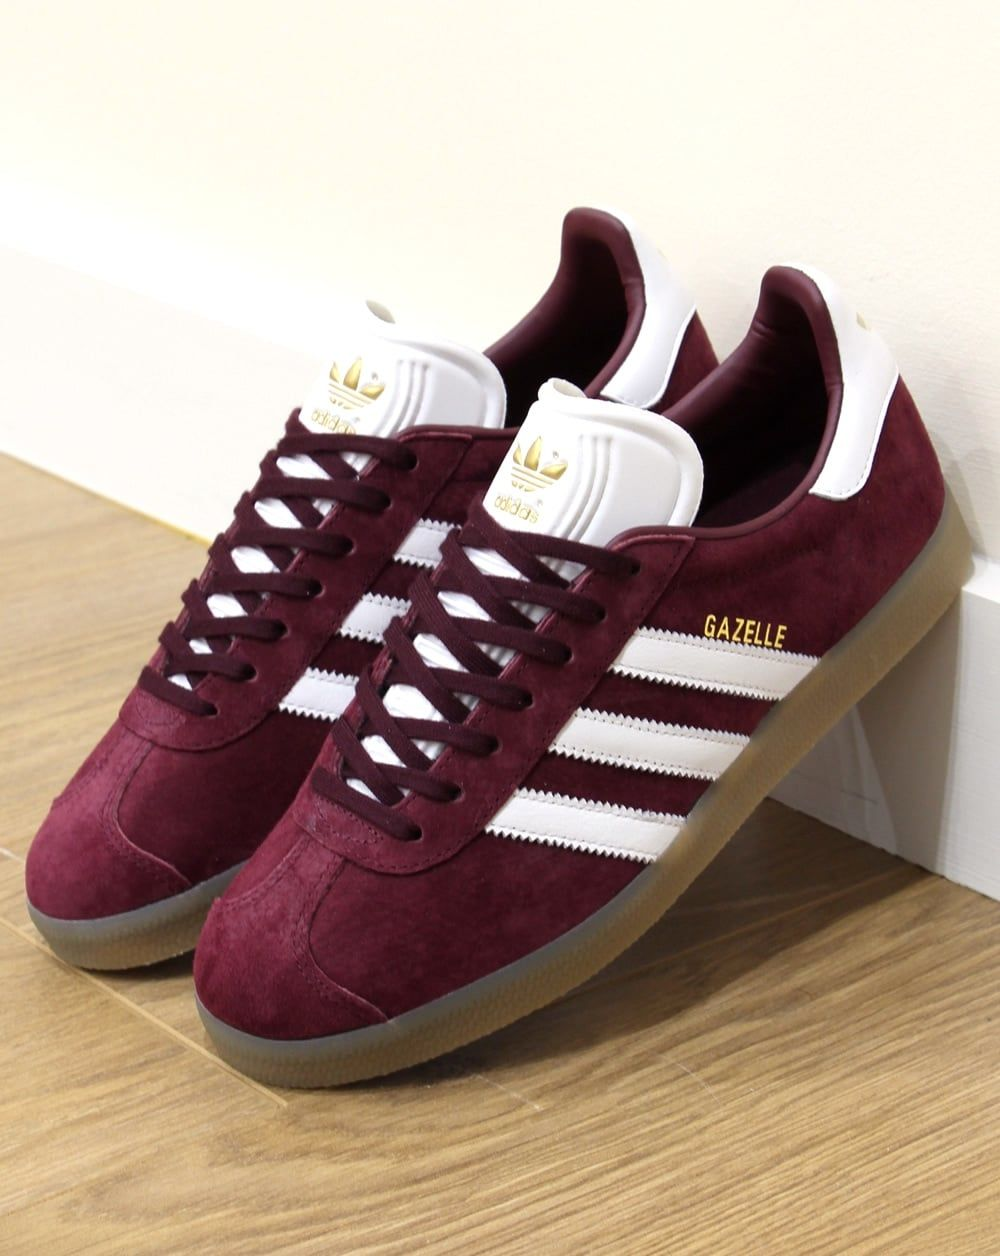 Mentalmente literalmente lápiz  Adidas Gazelle Trainers Maroon/White/Gum | Adidas gazelle, Adidas shoes  women, Adidas shoes originals